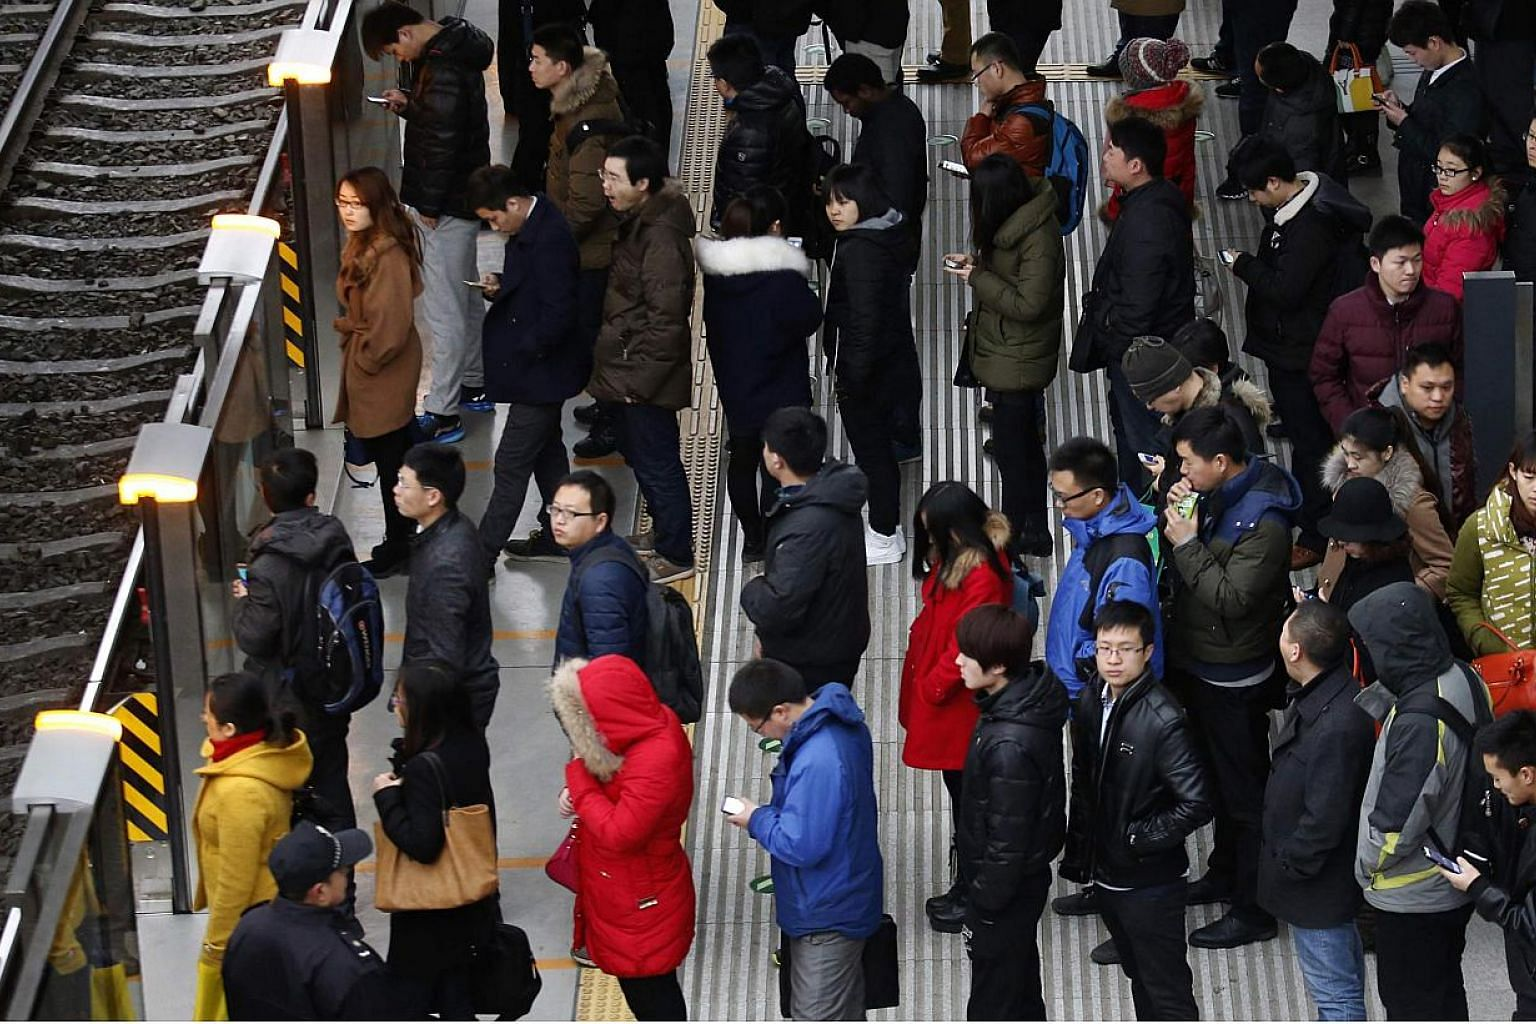 Passengers waiting for a train in Beijing on Feb 25, 2015. Beijing police are patrolling the city's subways and trains to stop people wearing face masks, strange costumes and forming flash mobs, warning commuters that such actions could jeopardise pu